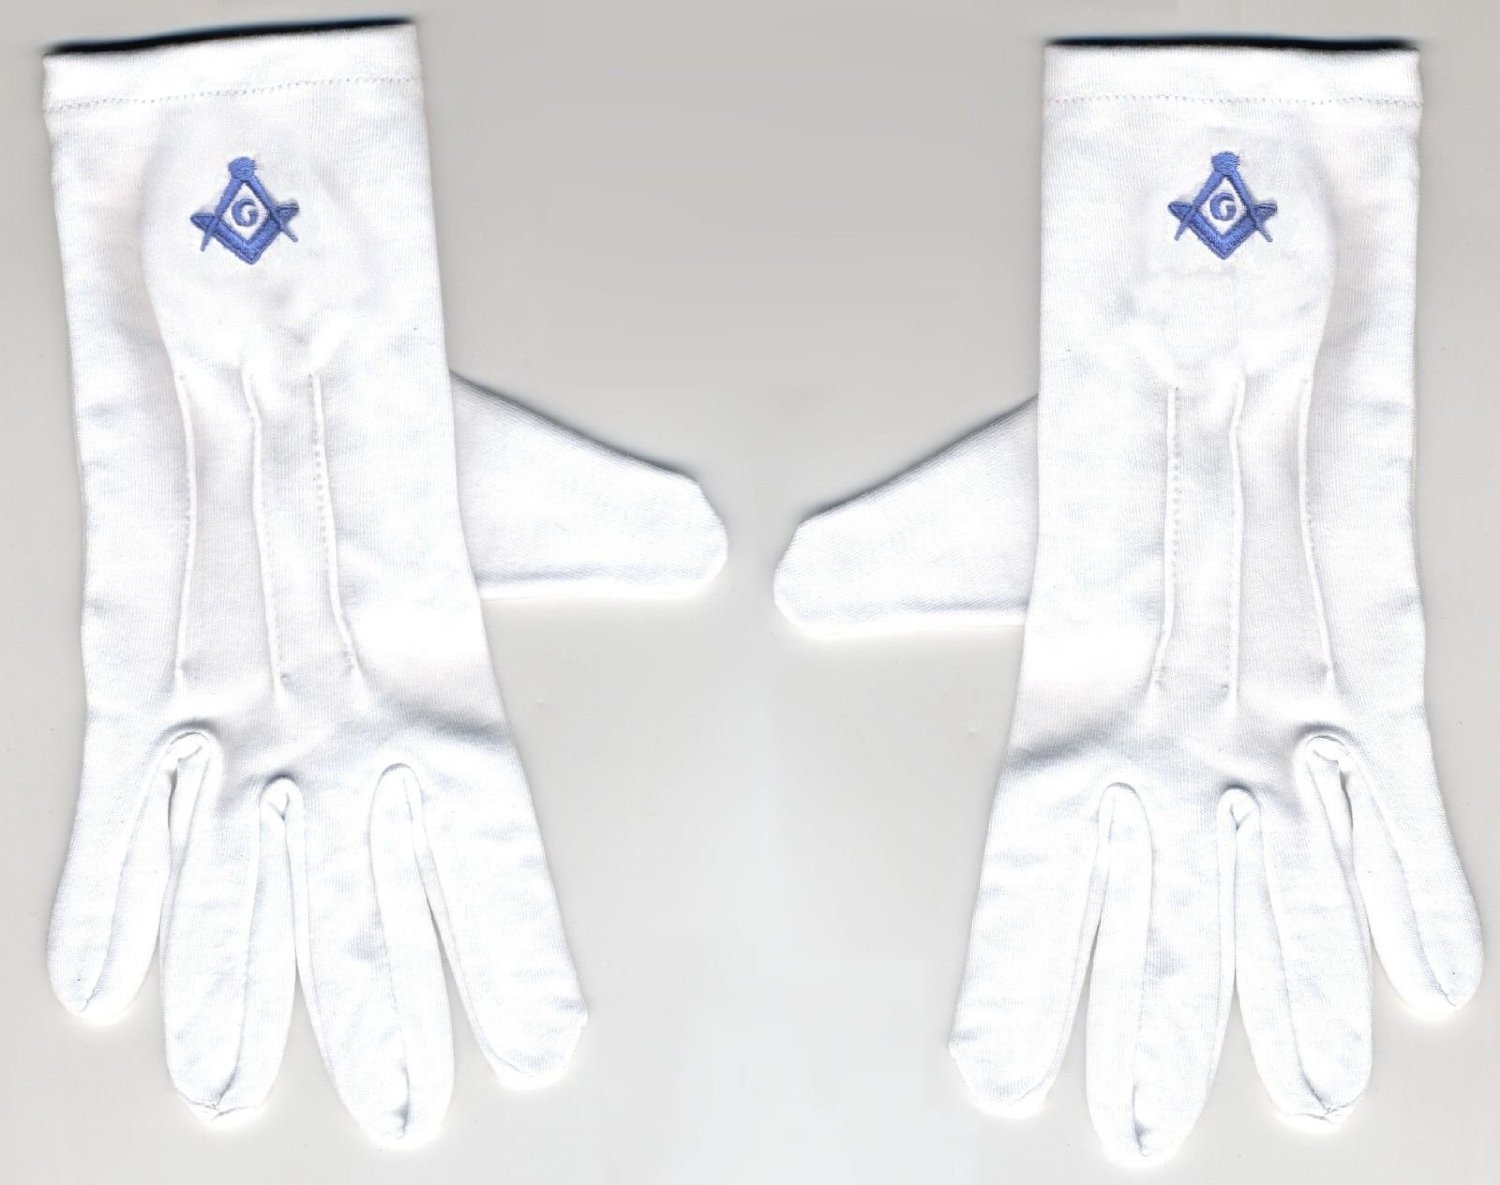 Size Large Embroidered / Stitched Blue LOGO Gloves, Masonic Logo Mason, Freemason Freemasons Free Mason Masons Masonic Masonry Freemasonry Past Masters' Emblem Shriner,york Scottish Rite, ,Grotto,movper, Craft Lodge Entered Apprentice Fellowcraft Master Rose Croix Lodge Perfection, Commandery Knights Templar by Telemosaic | CheapWin | MasonicSales | Square-and-Compasses Co..